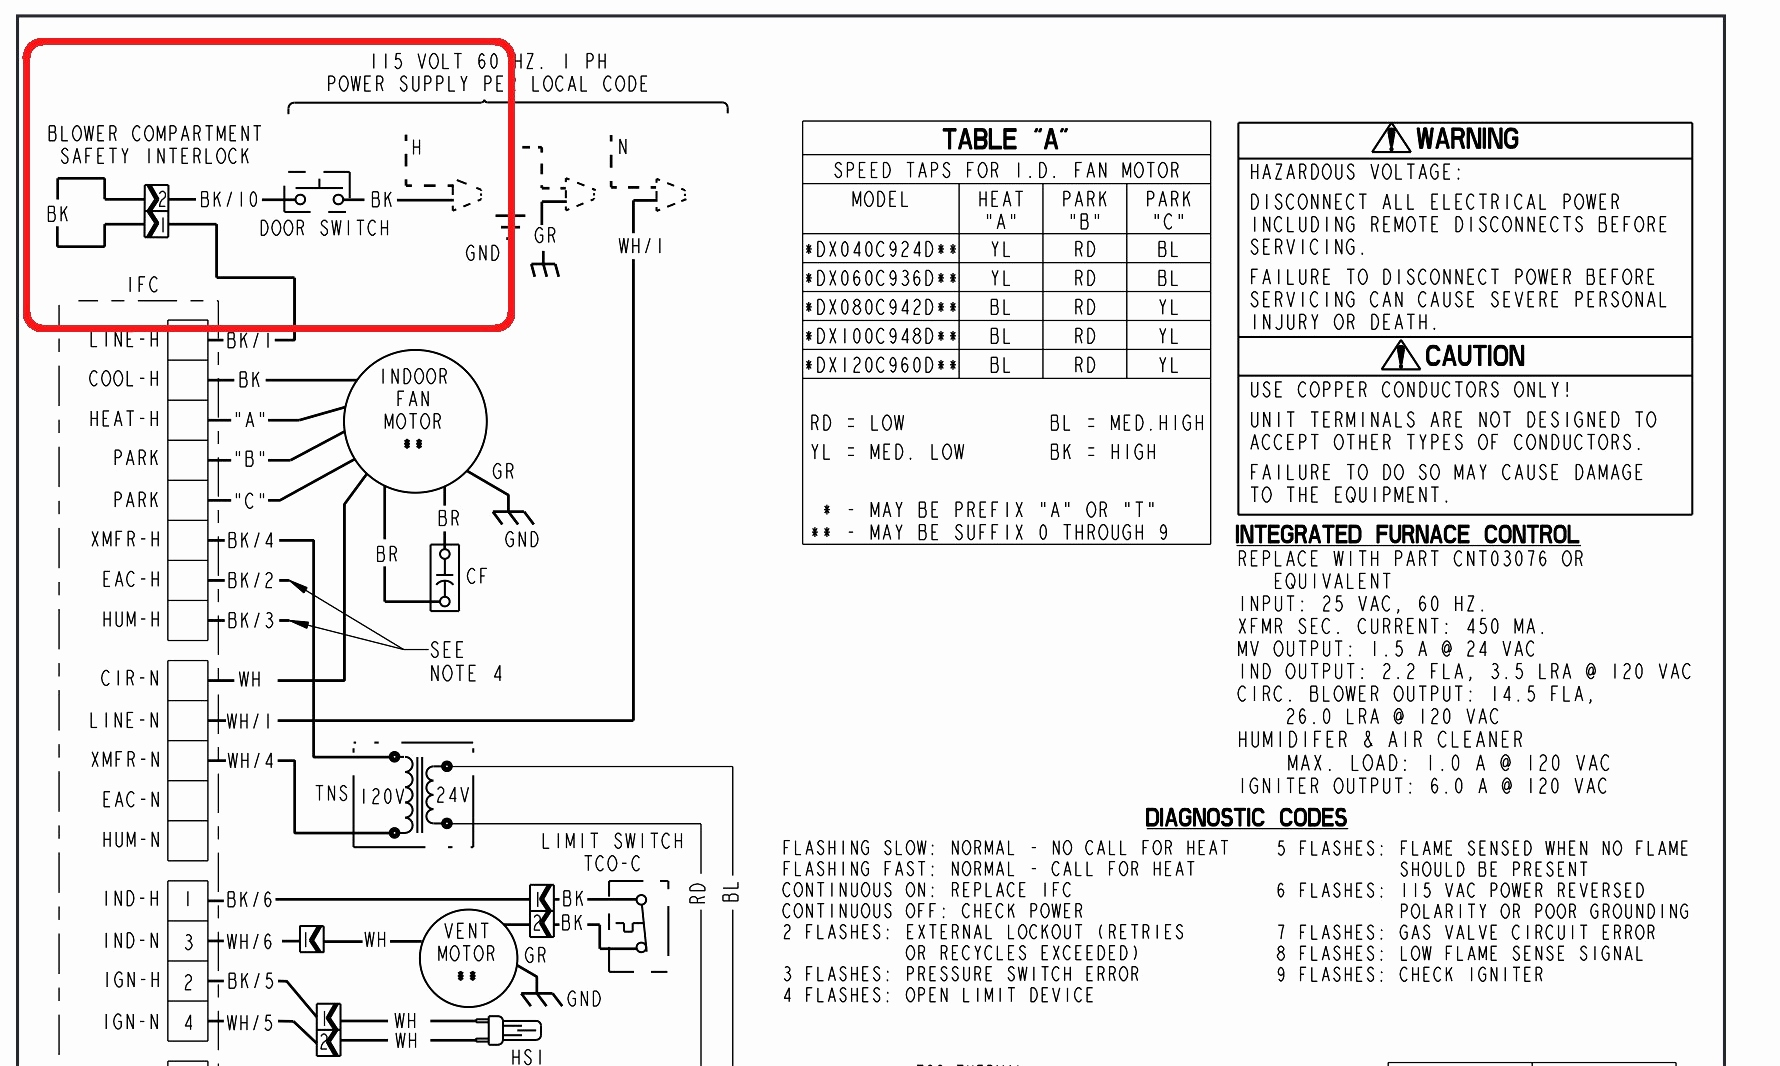 wiring diagram older furnace